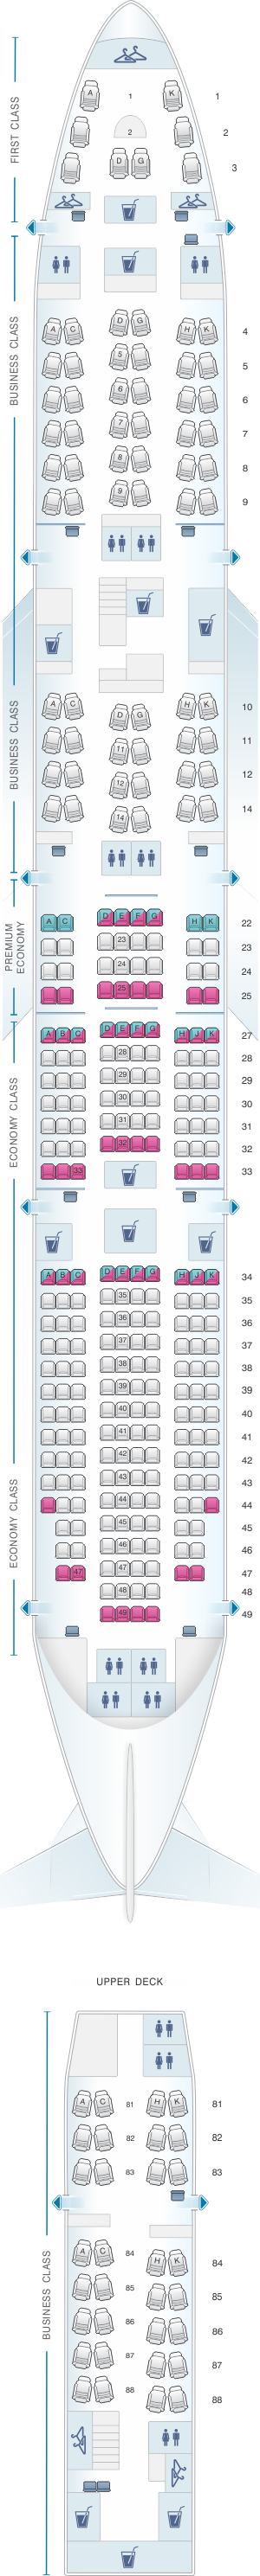 Seat map for Lufthansa Boeing B747-8 340pax